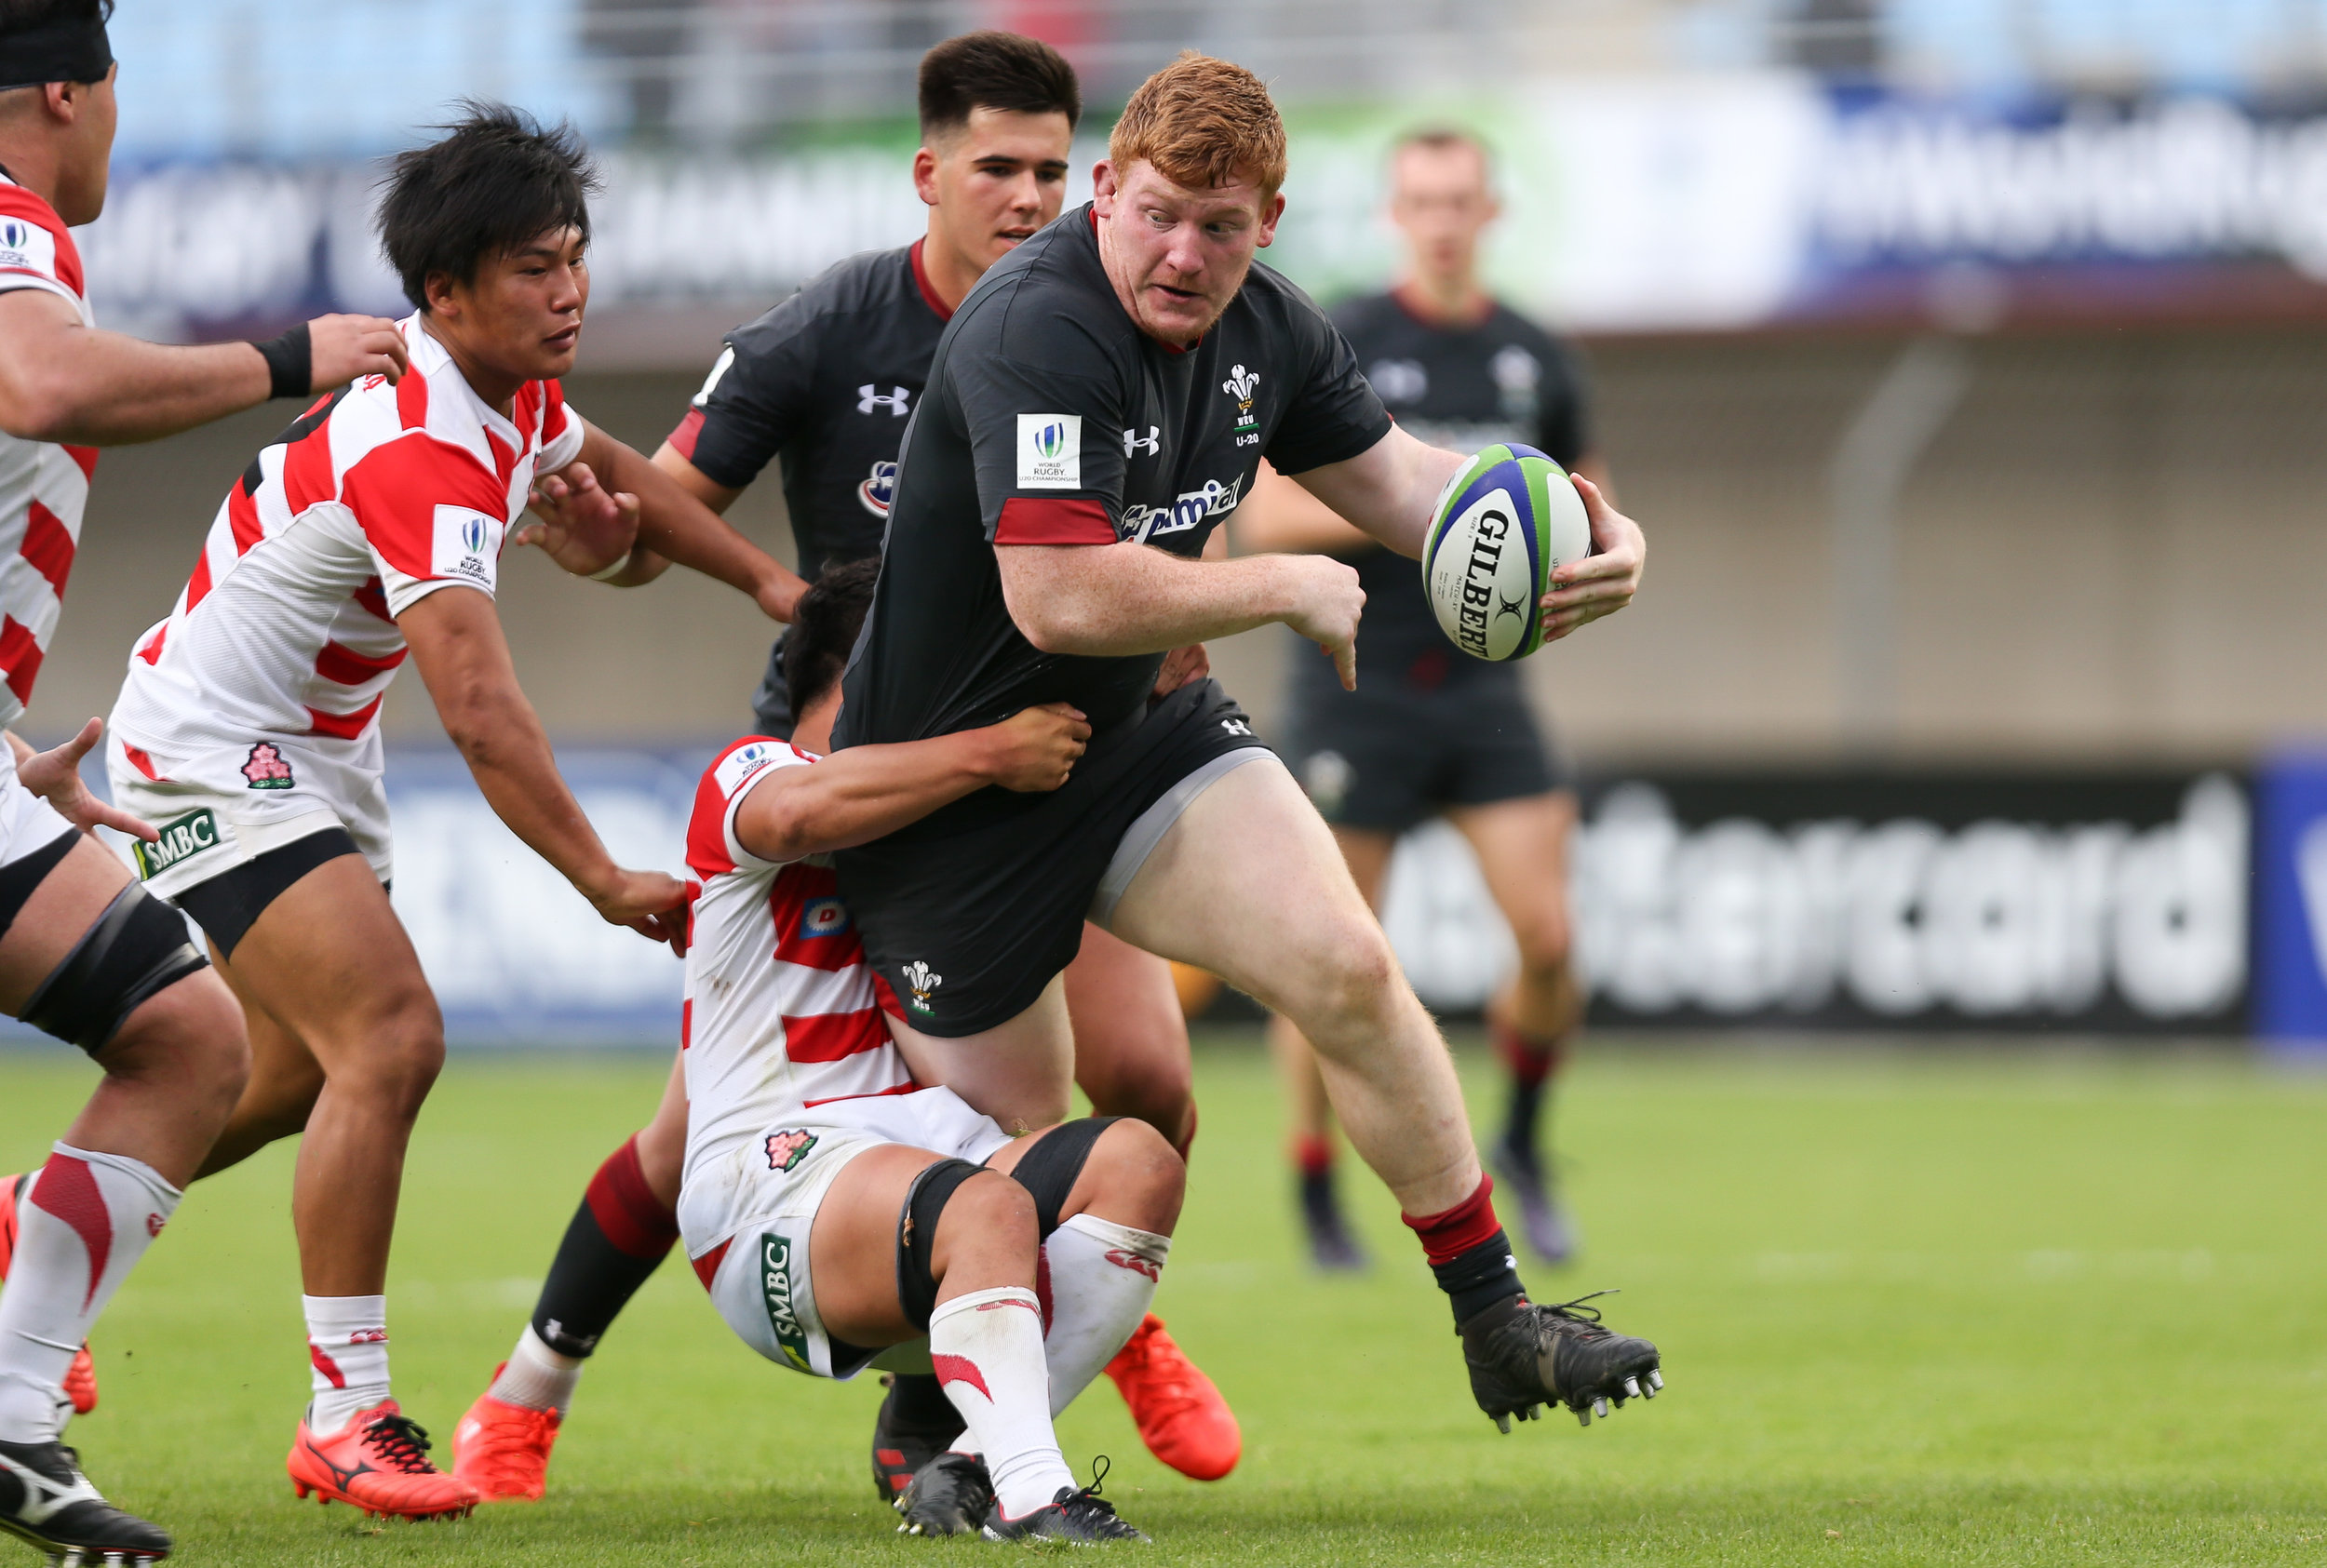 Rhys Carre playing for Wales against Japan in the World Rugby U20 Championship